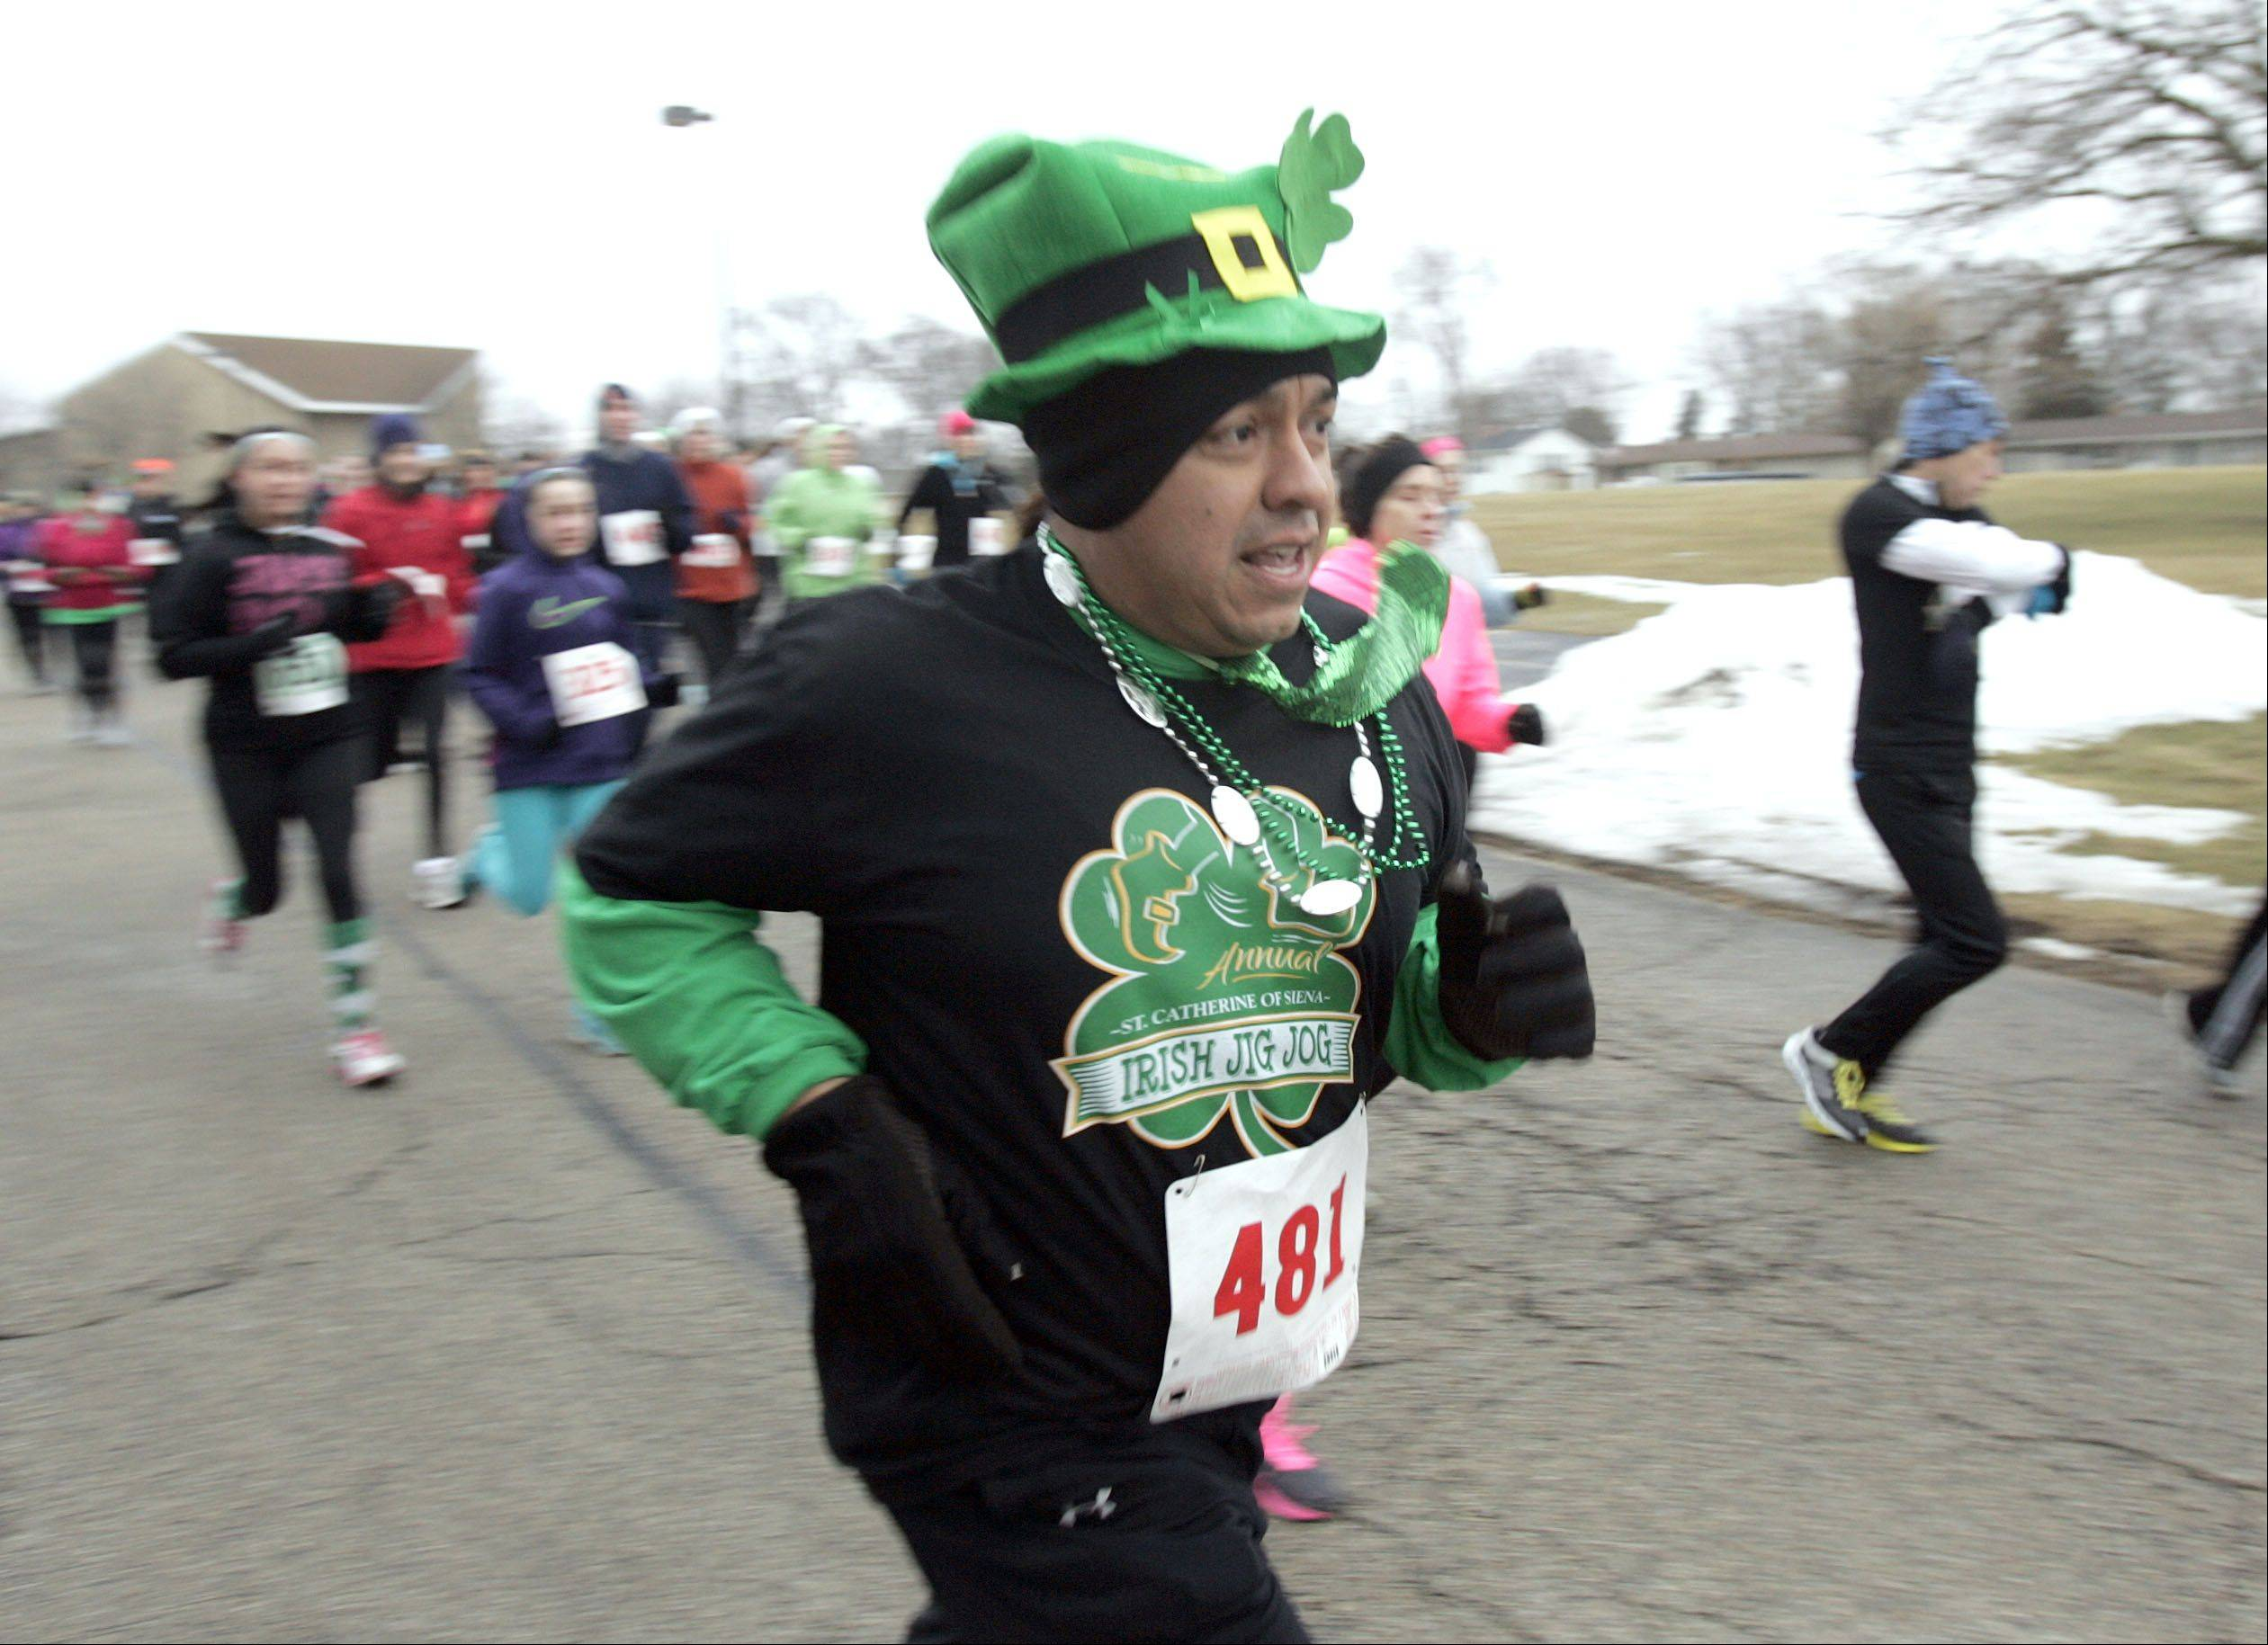 Warner Cruz, of Itasca, heads out of the starting gate during the Irish Jig Jog 5K Race and Pancake Breakfast at St. Catherine of Siena in West Dundee Saturday.